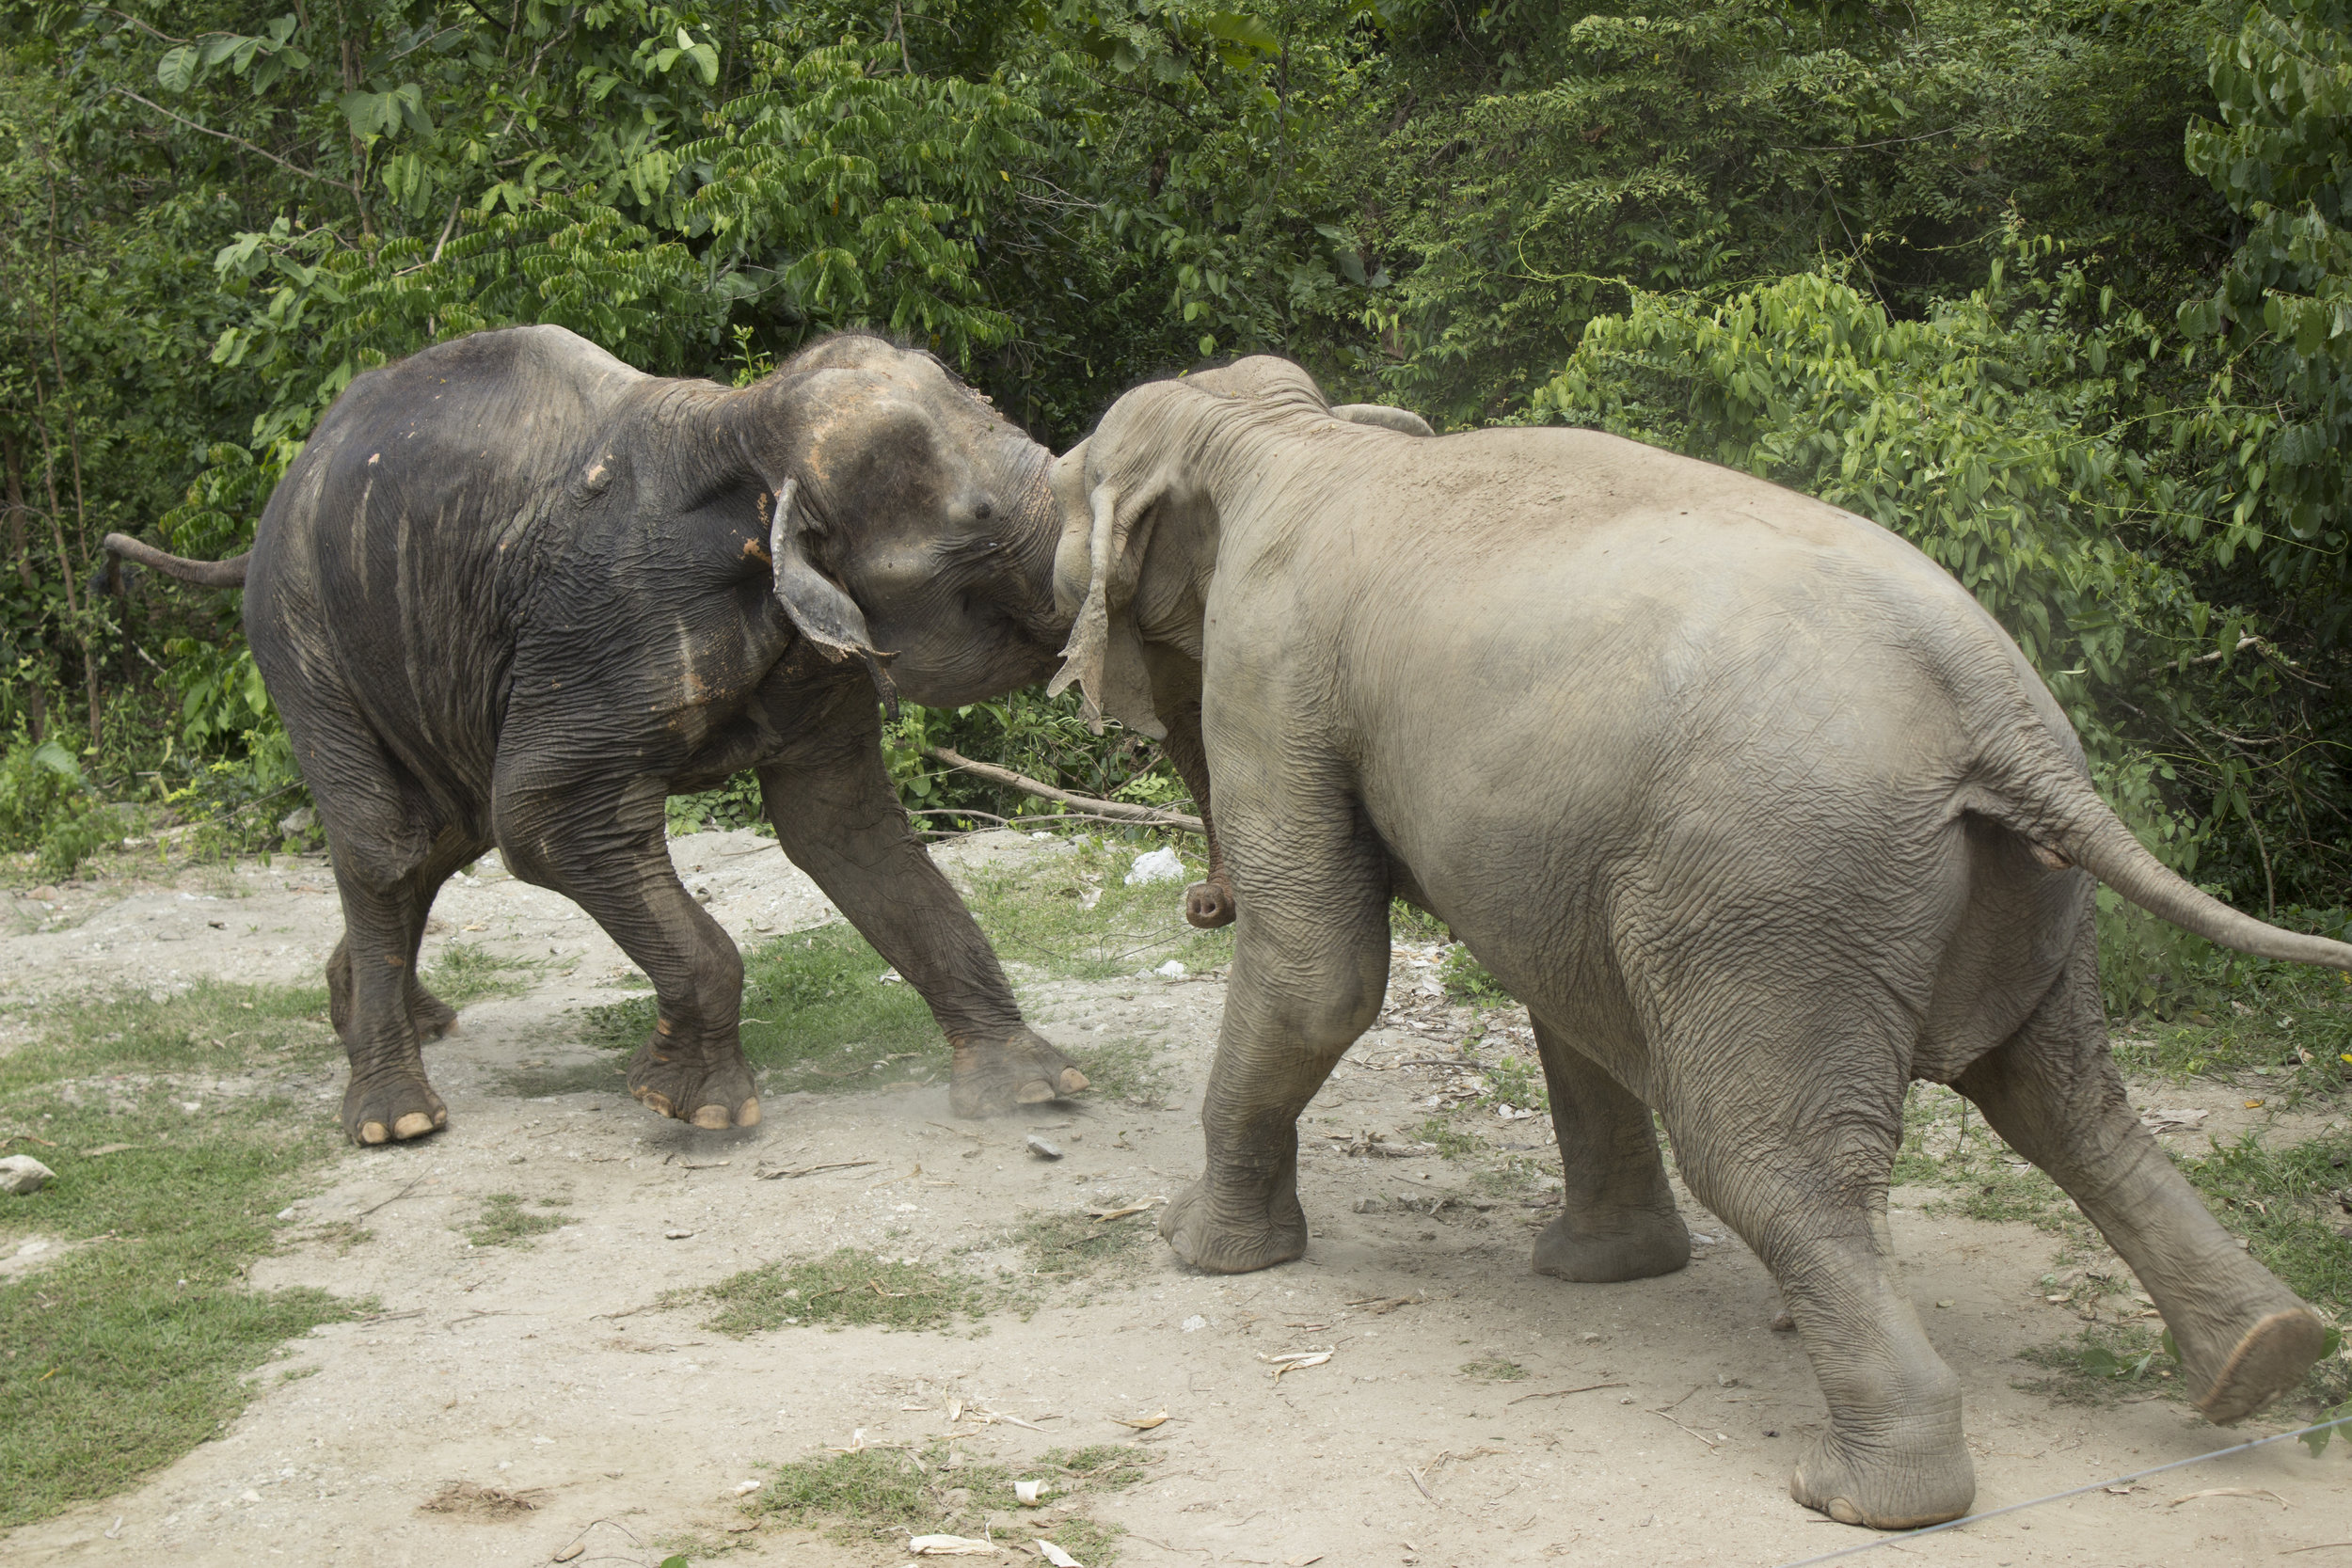 While I was there, we started to safely introduce the elephants to each other in a new, larger enclosure. Establishing a tight family herd was critical for such social creatures.